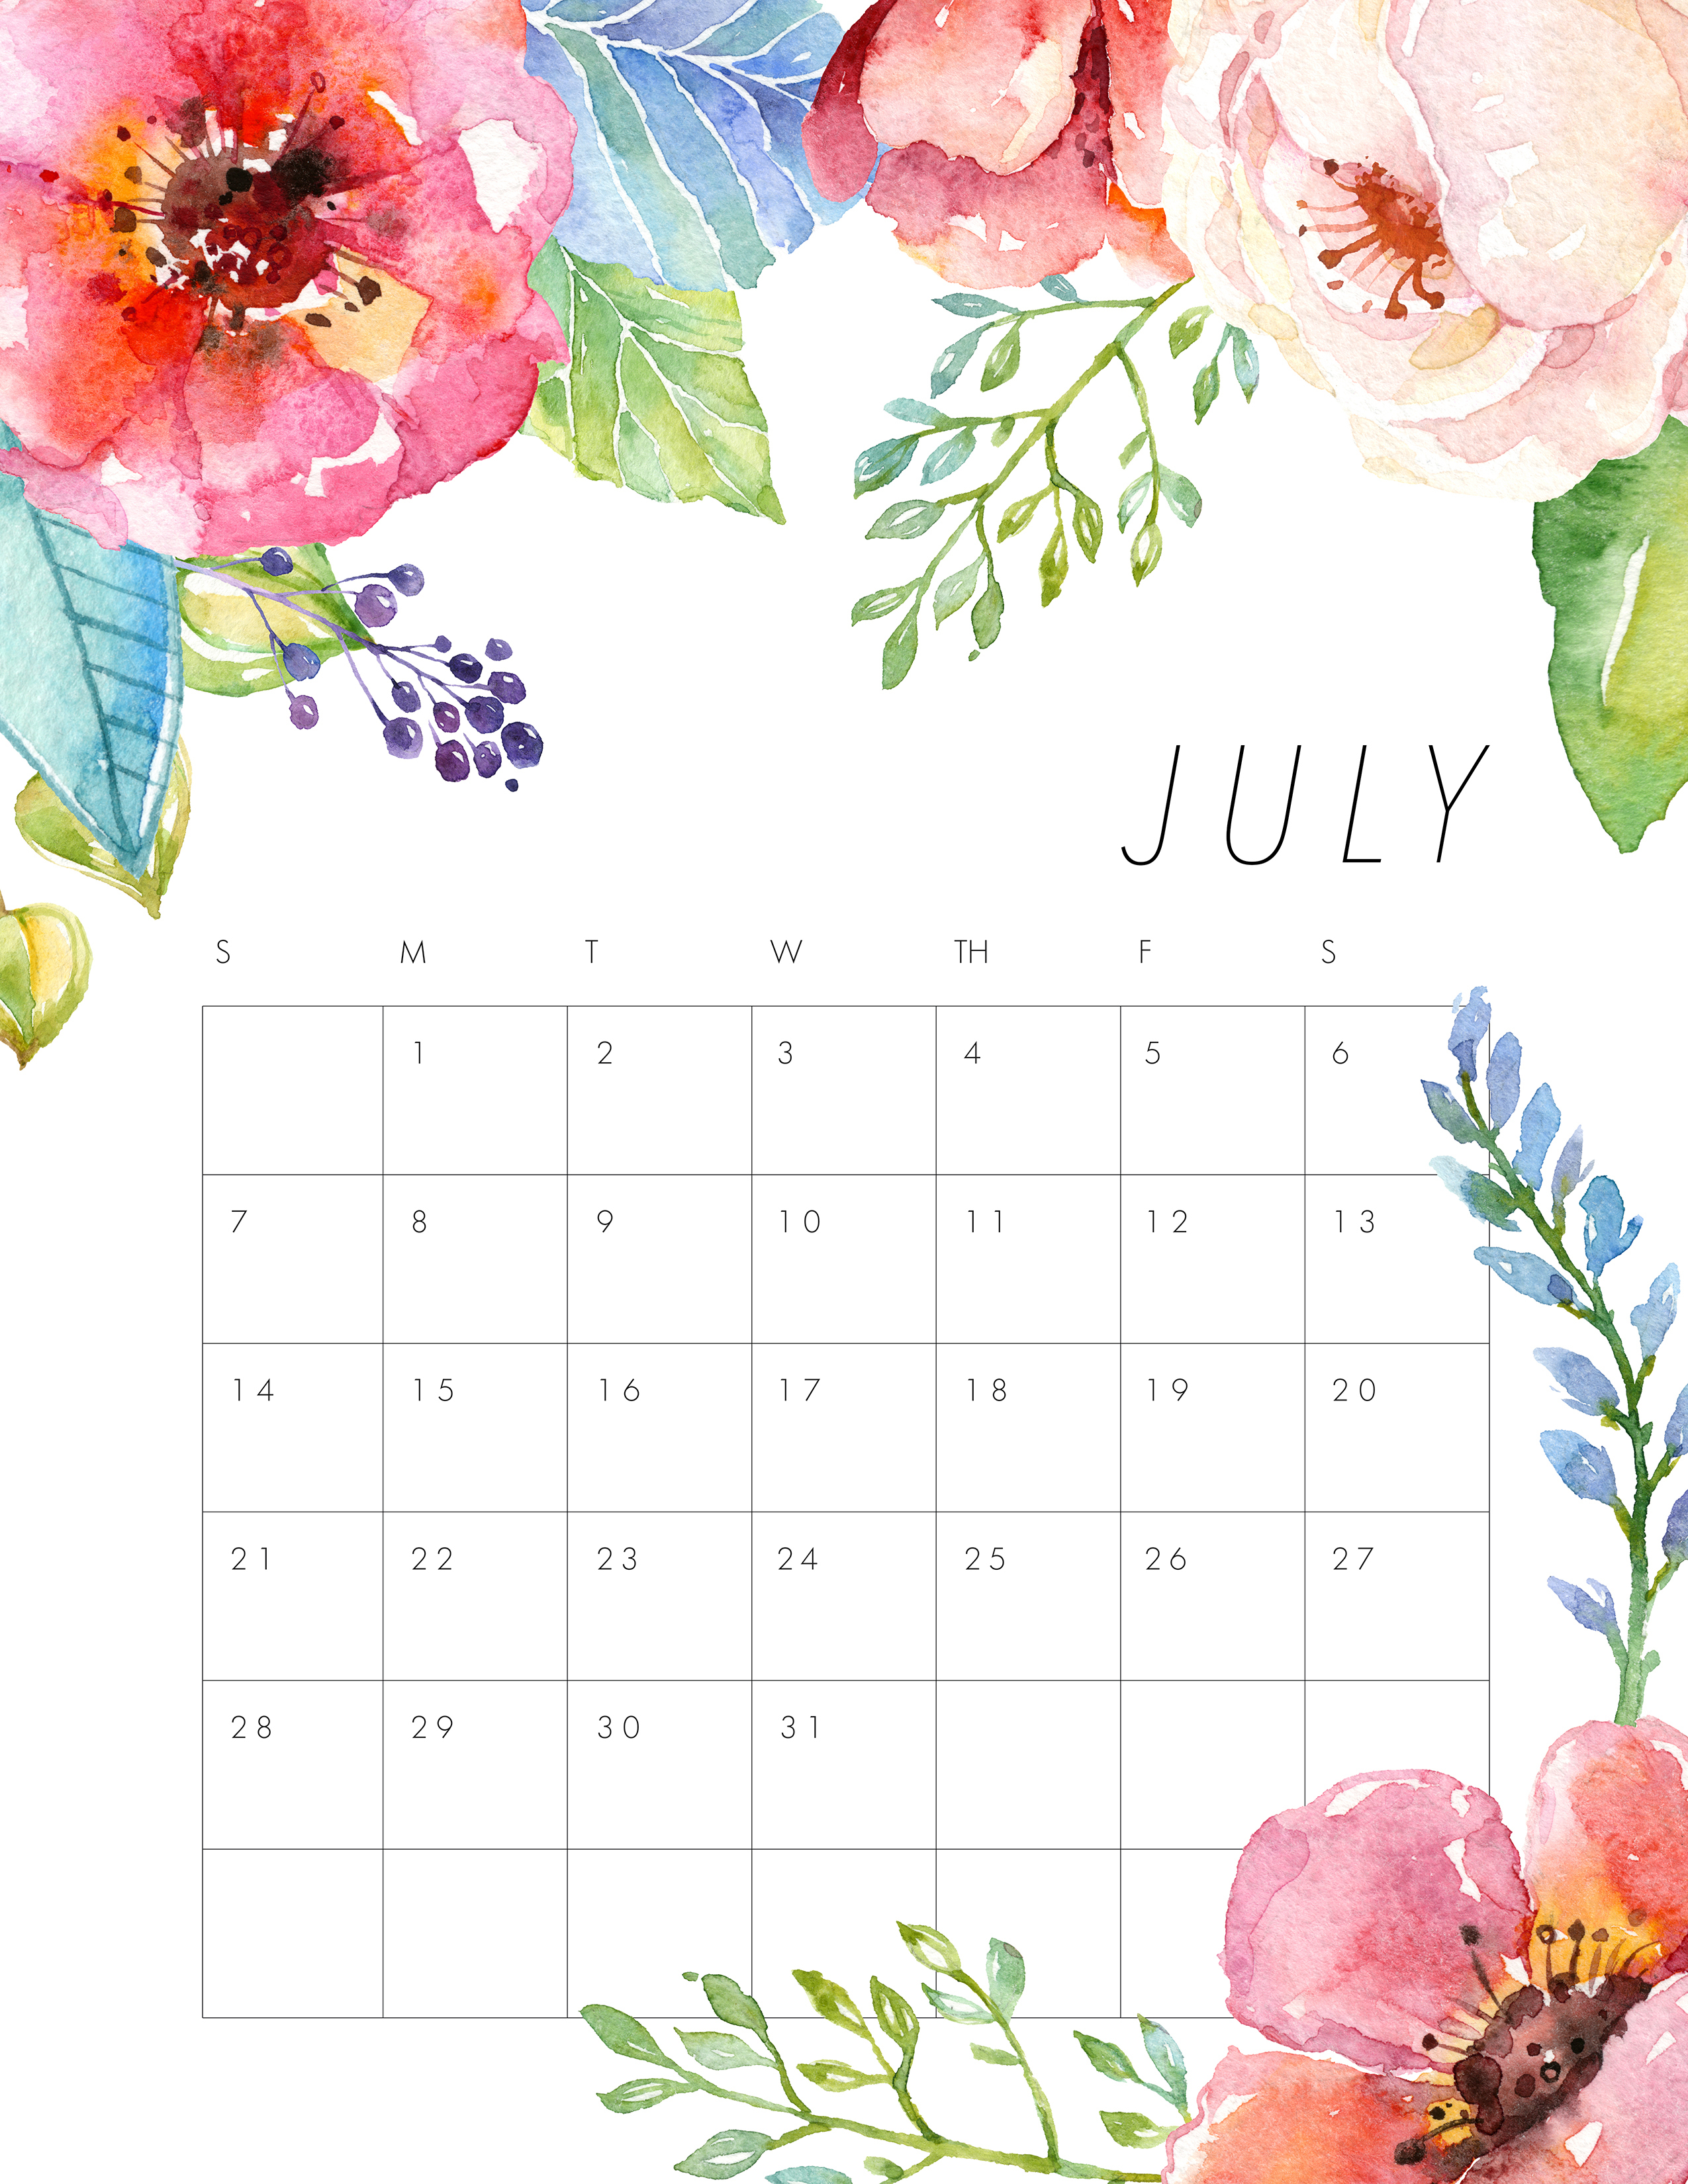 Free Printable 2019 Floral Calendar - The Cottage Market for July Calendar Template Flowers